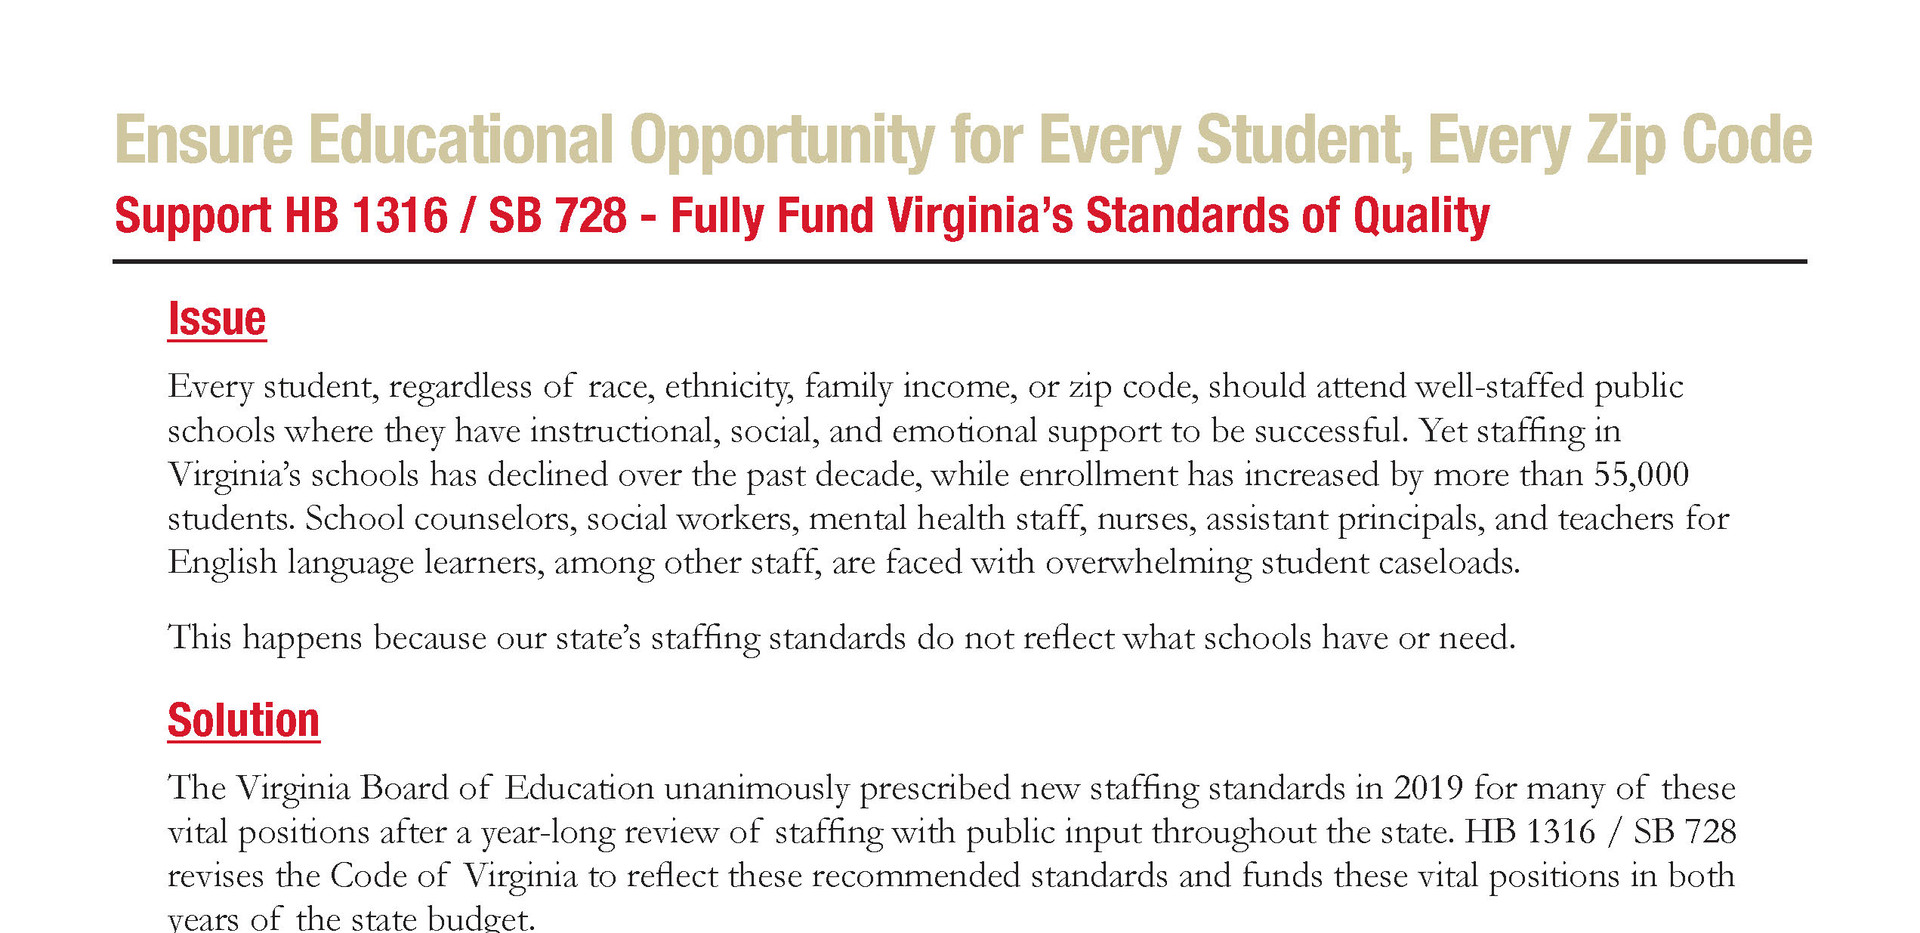 Fully Fund Virginia's Standards of Quality